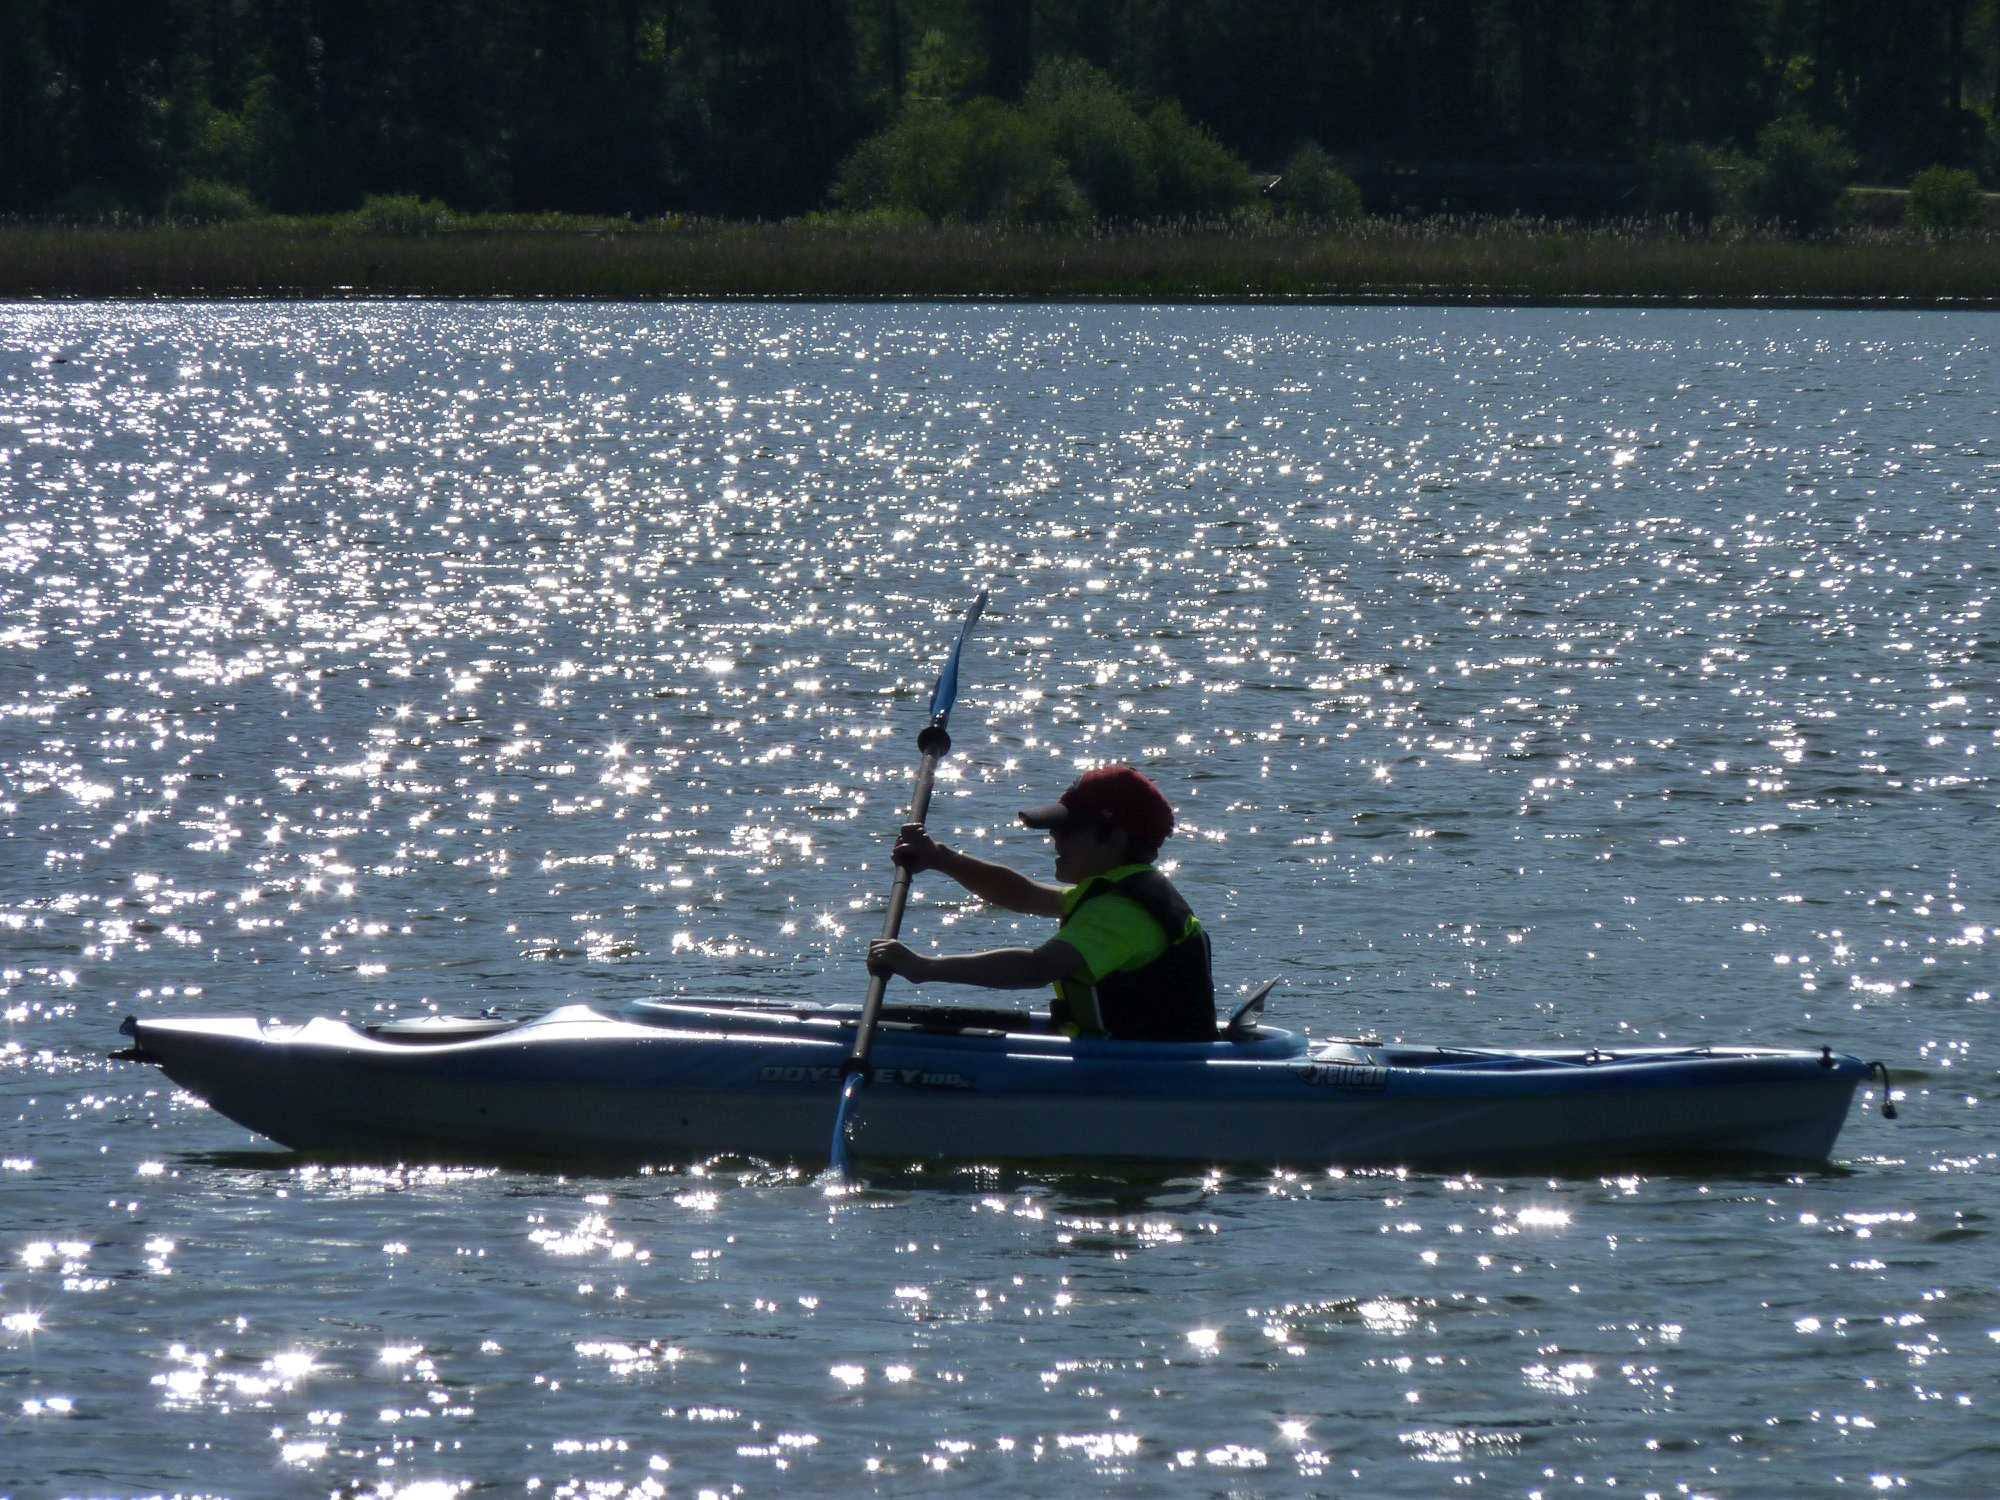 A young boy kayaking.